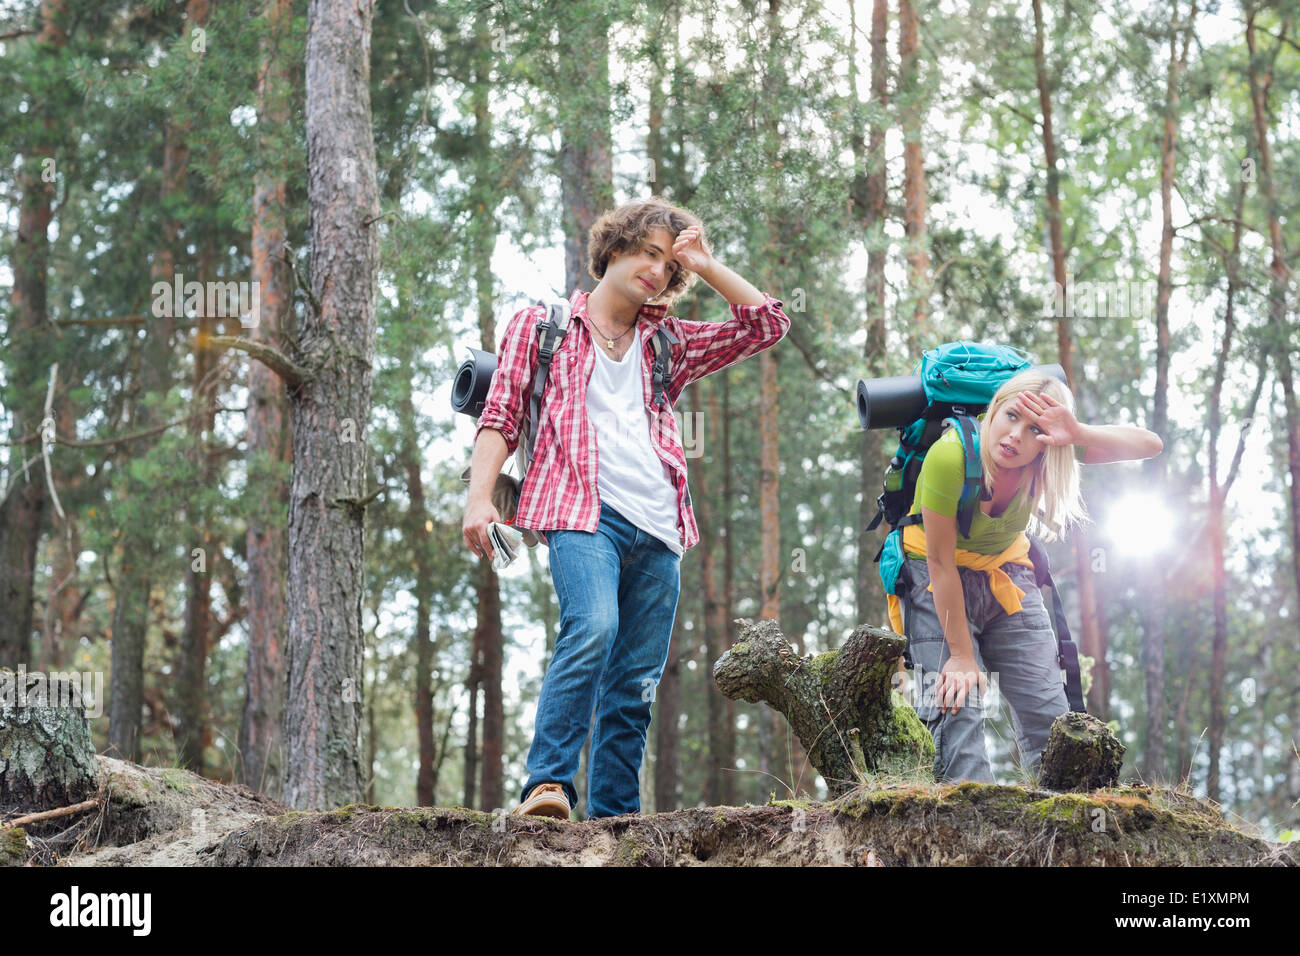 Tired hiking couple in forest - Stock Image